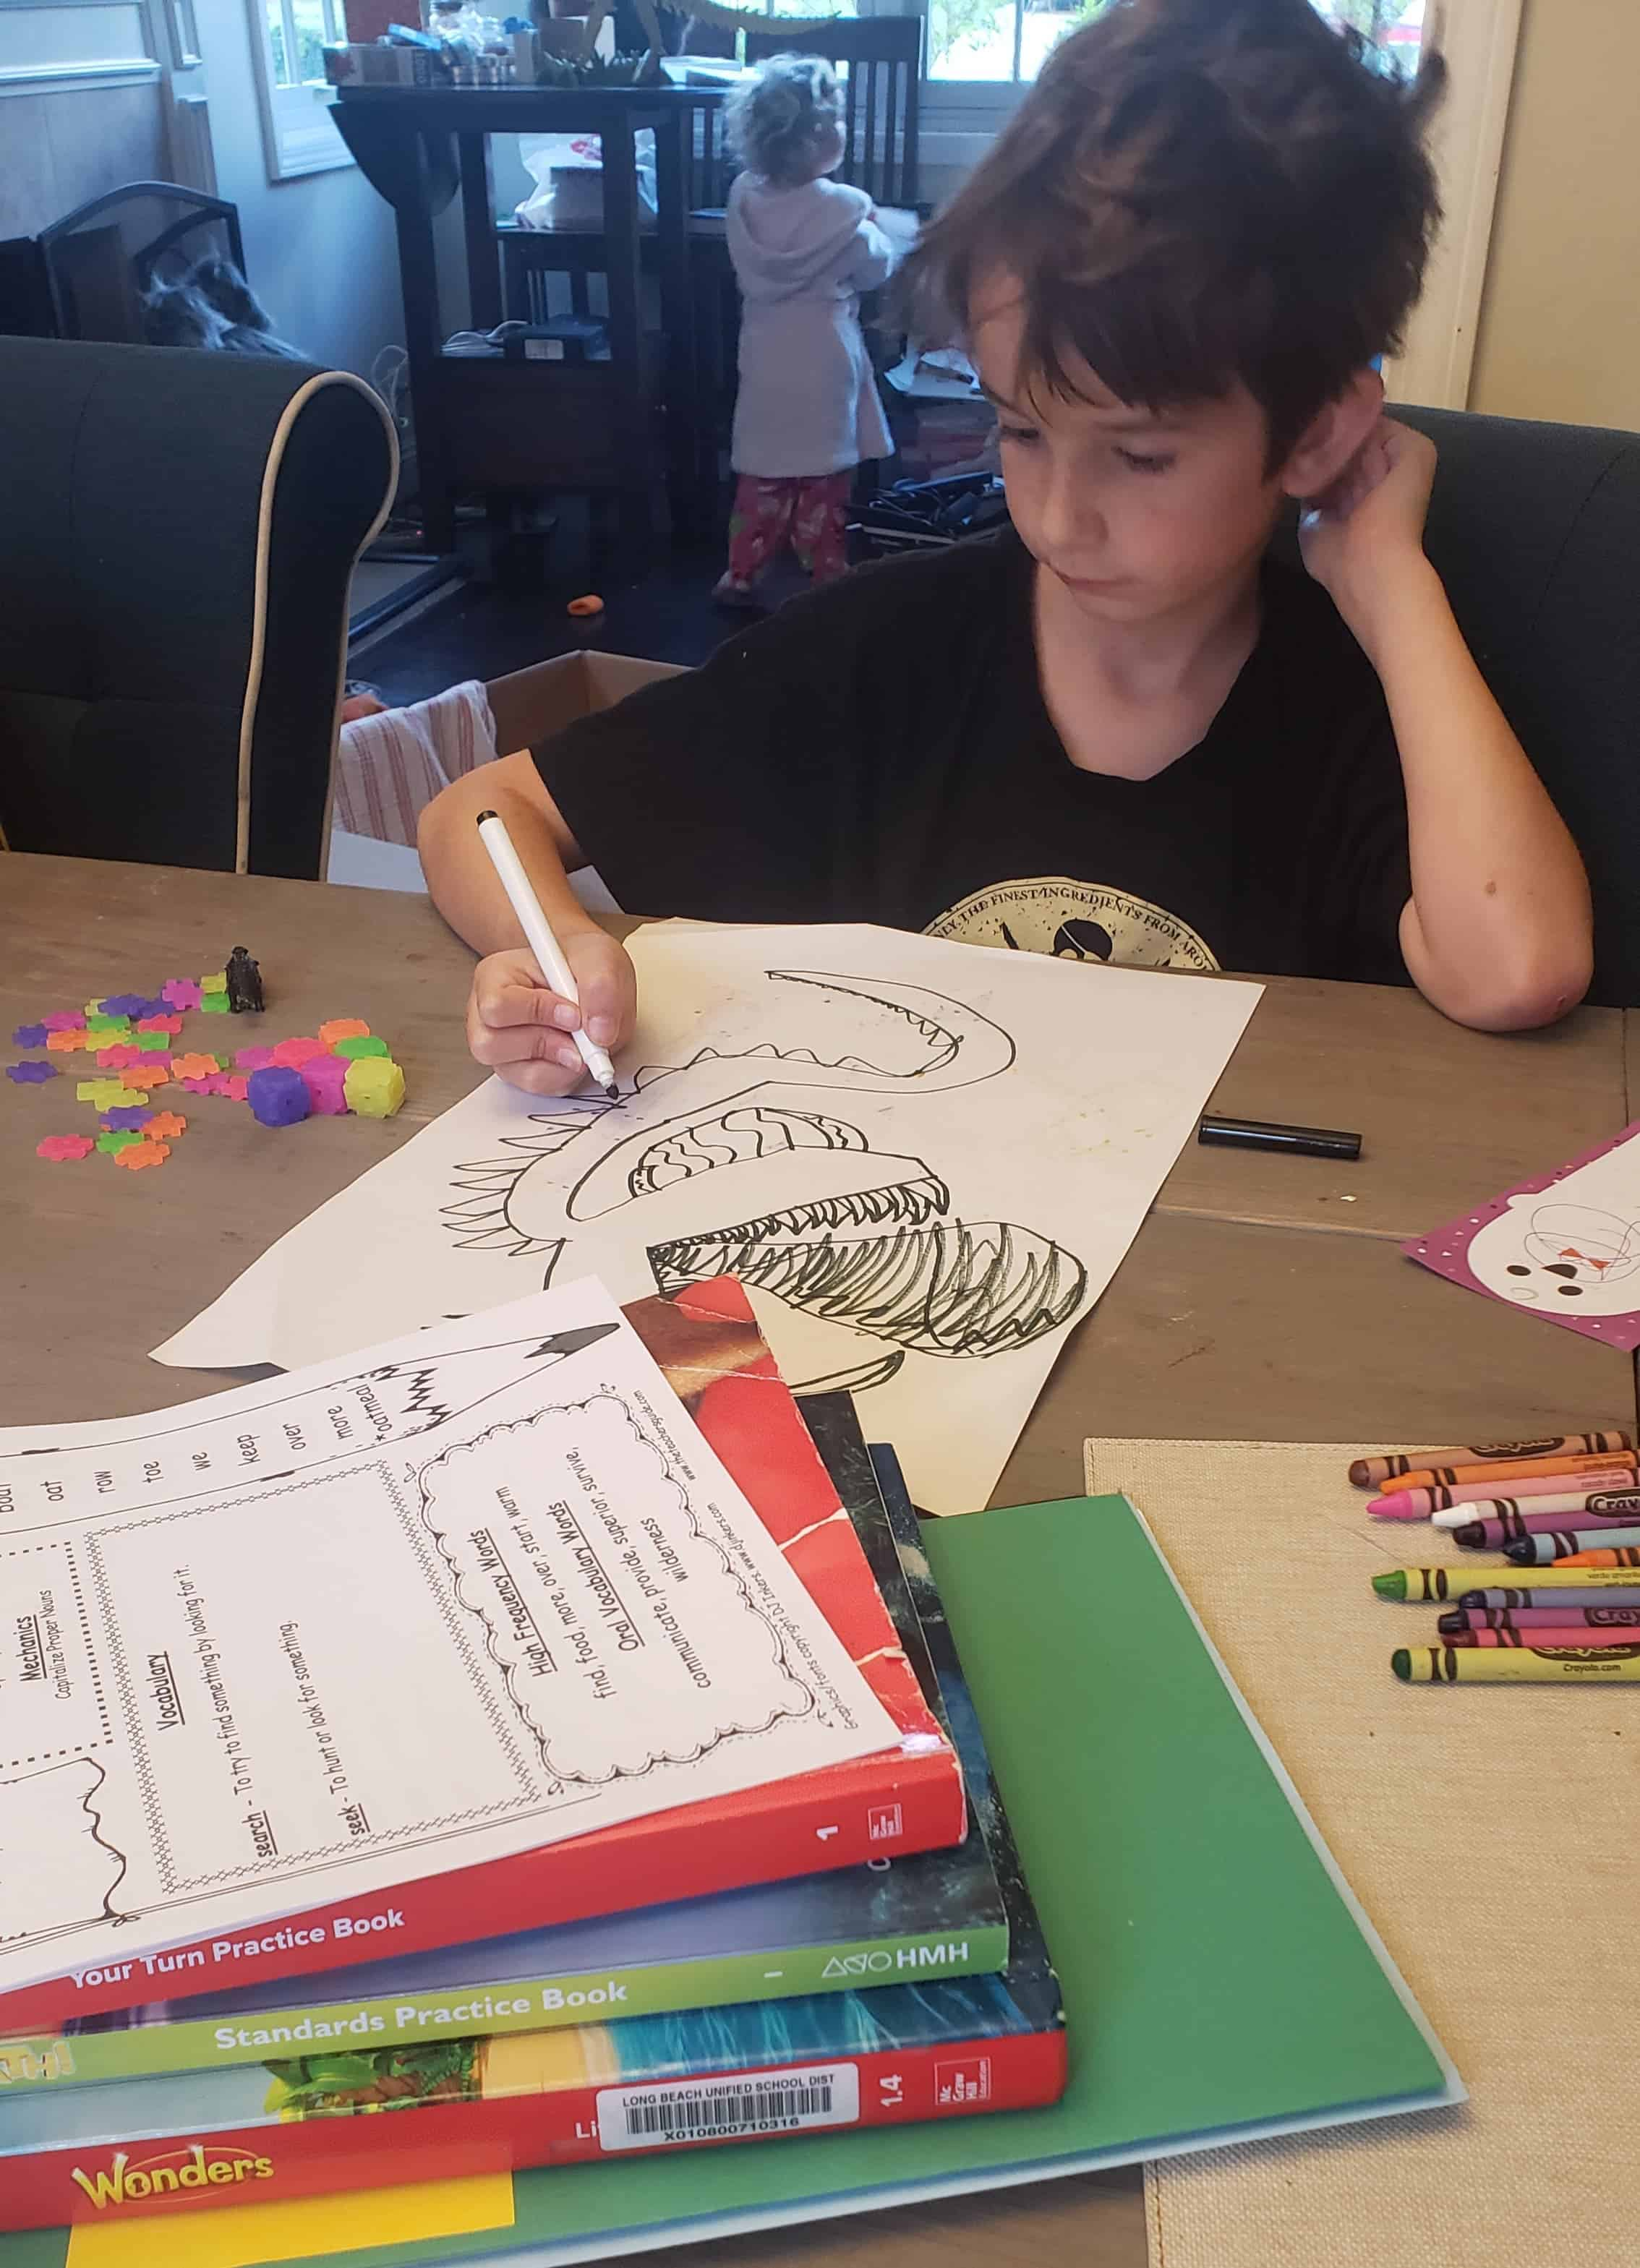 Child drawing artwork at the table.